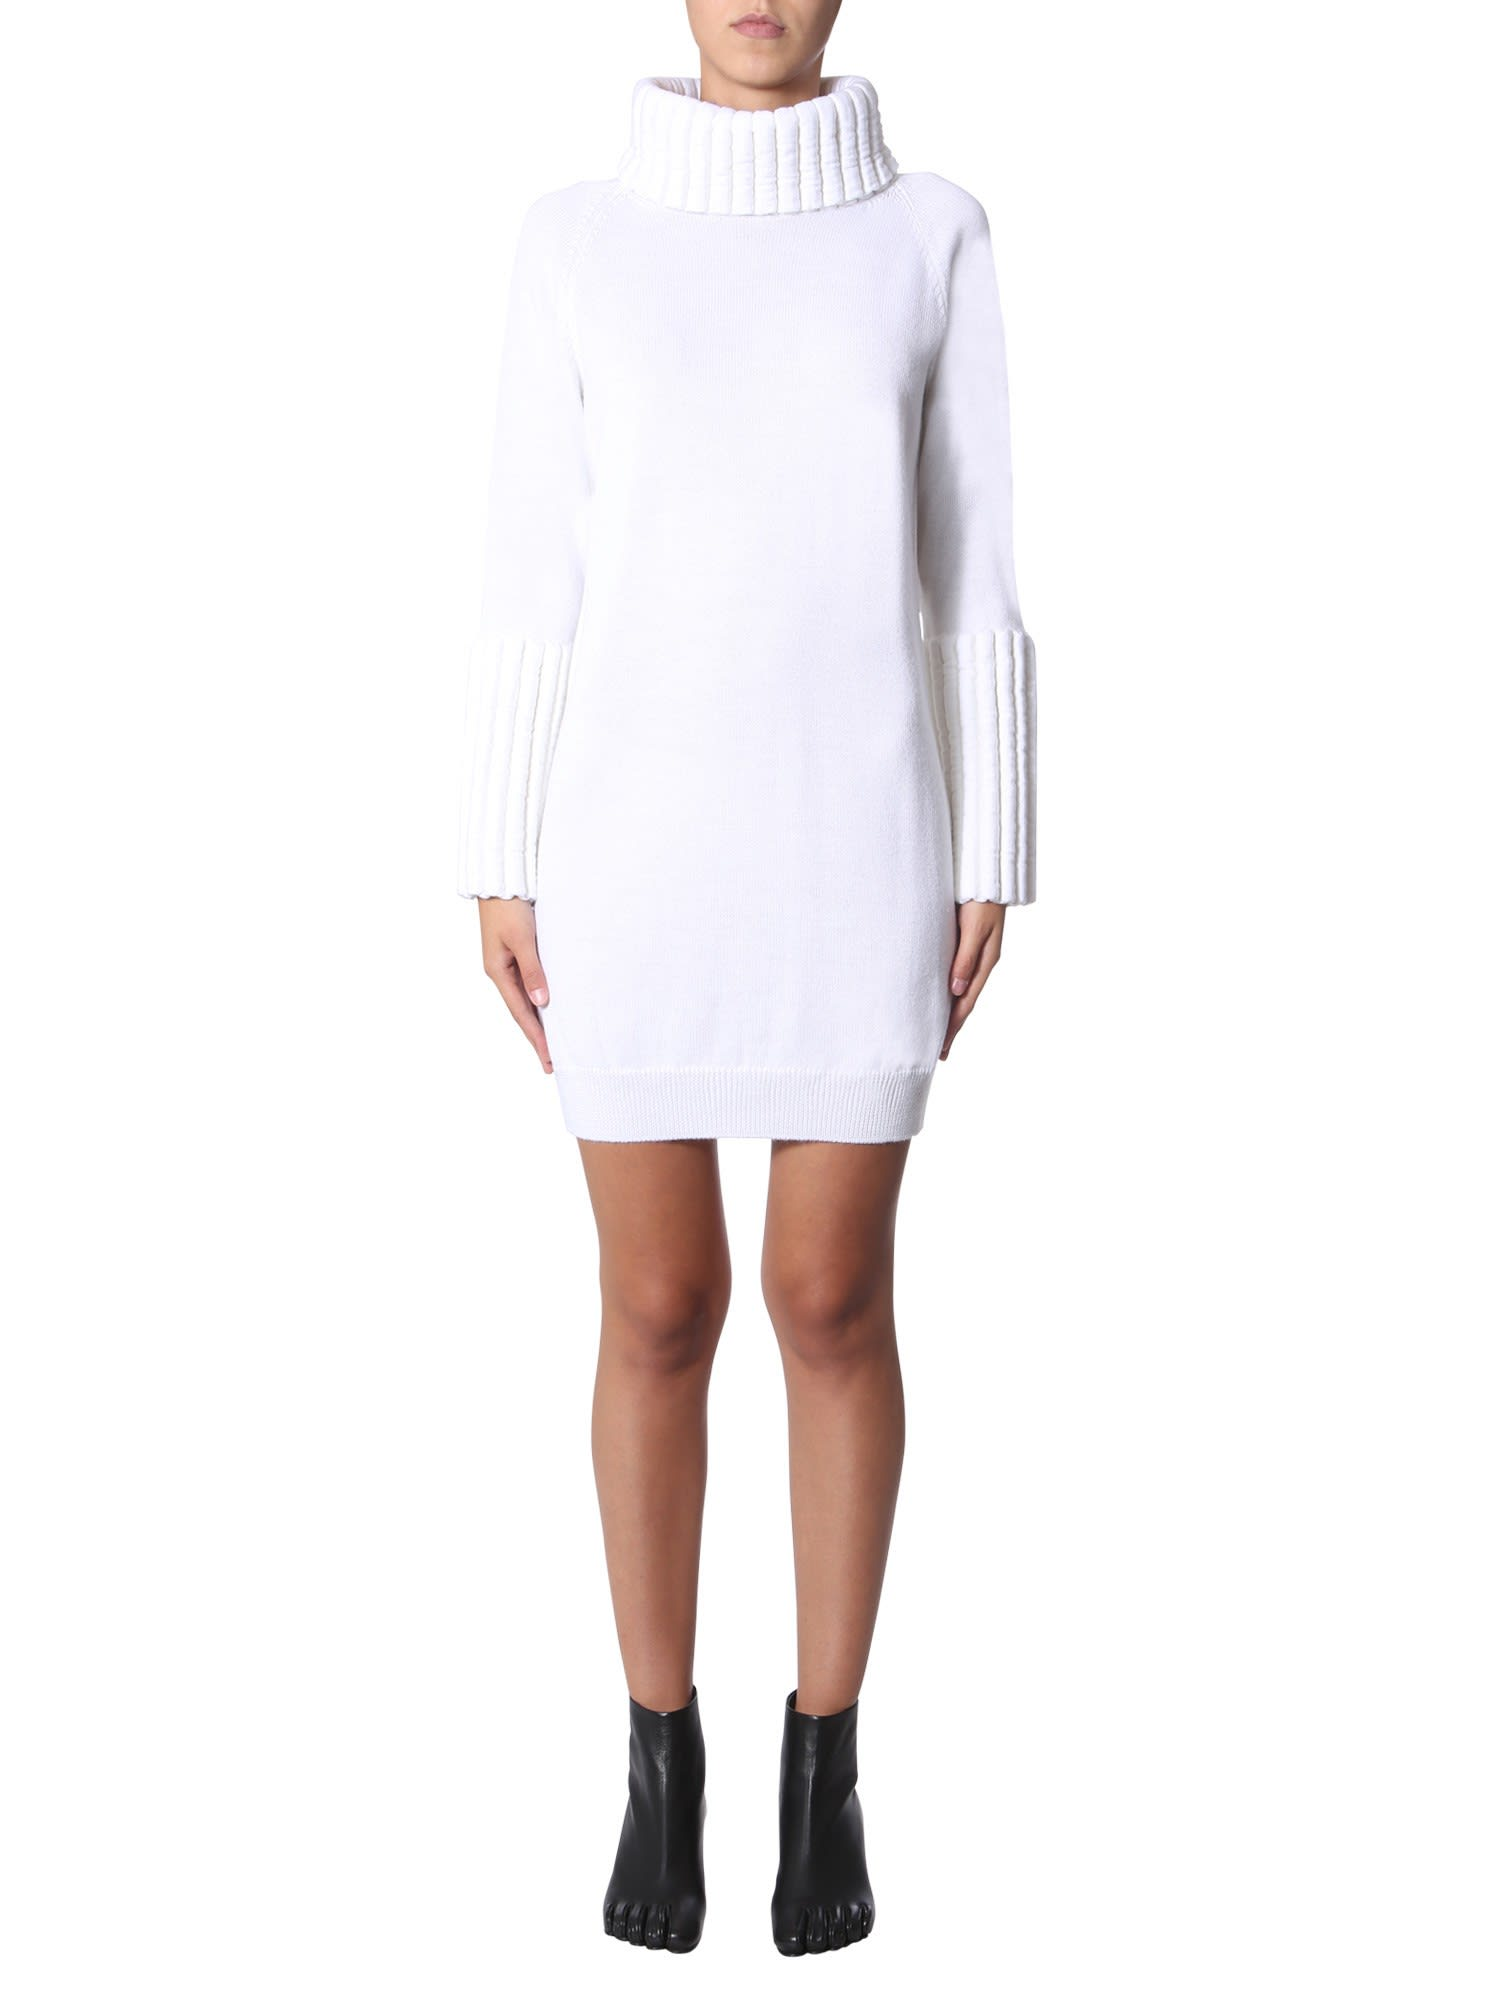 MM6 Maison Margiela Knitted Dress